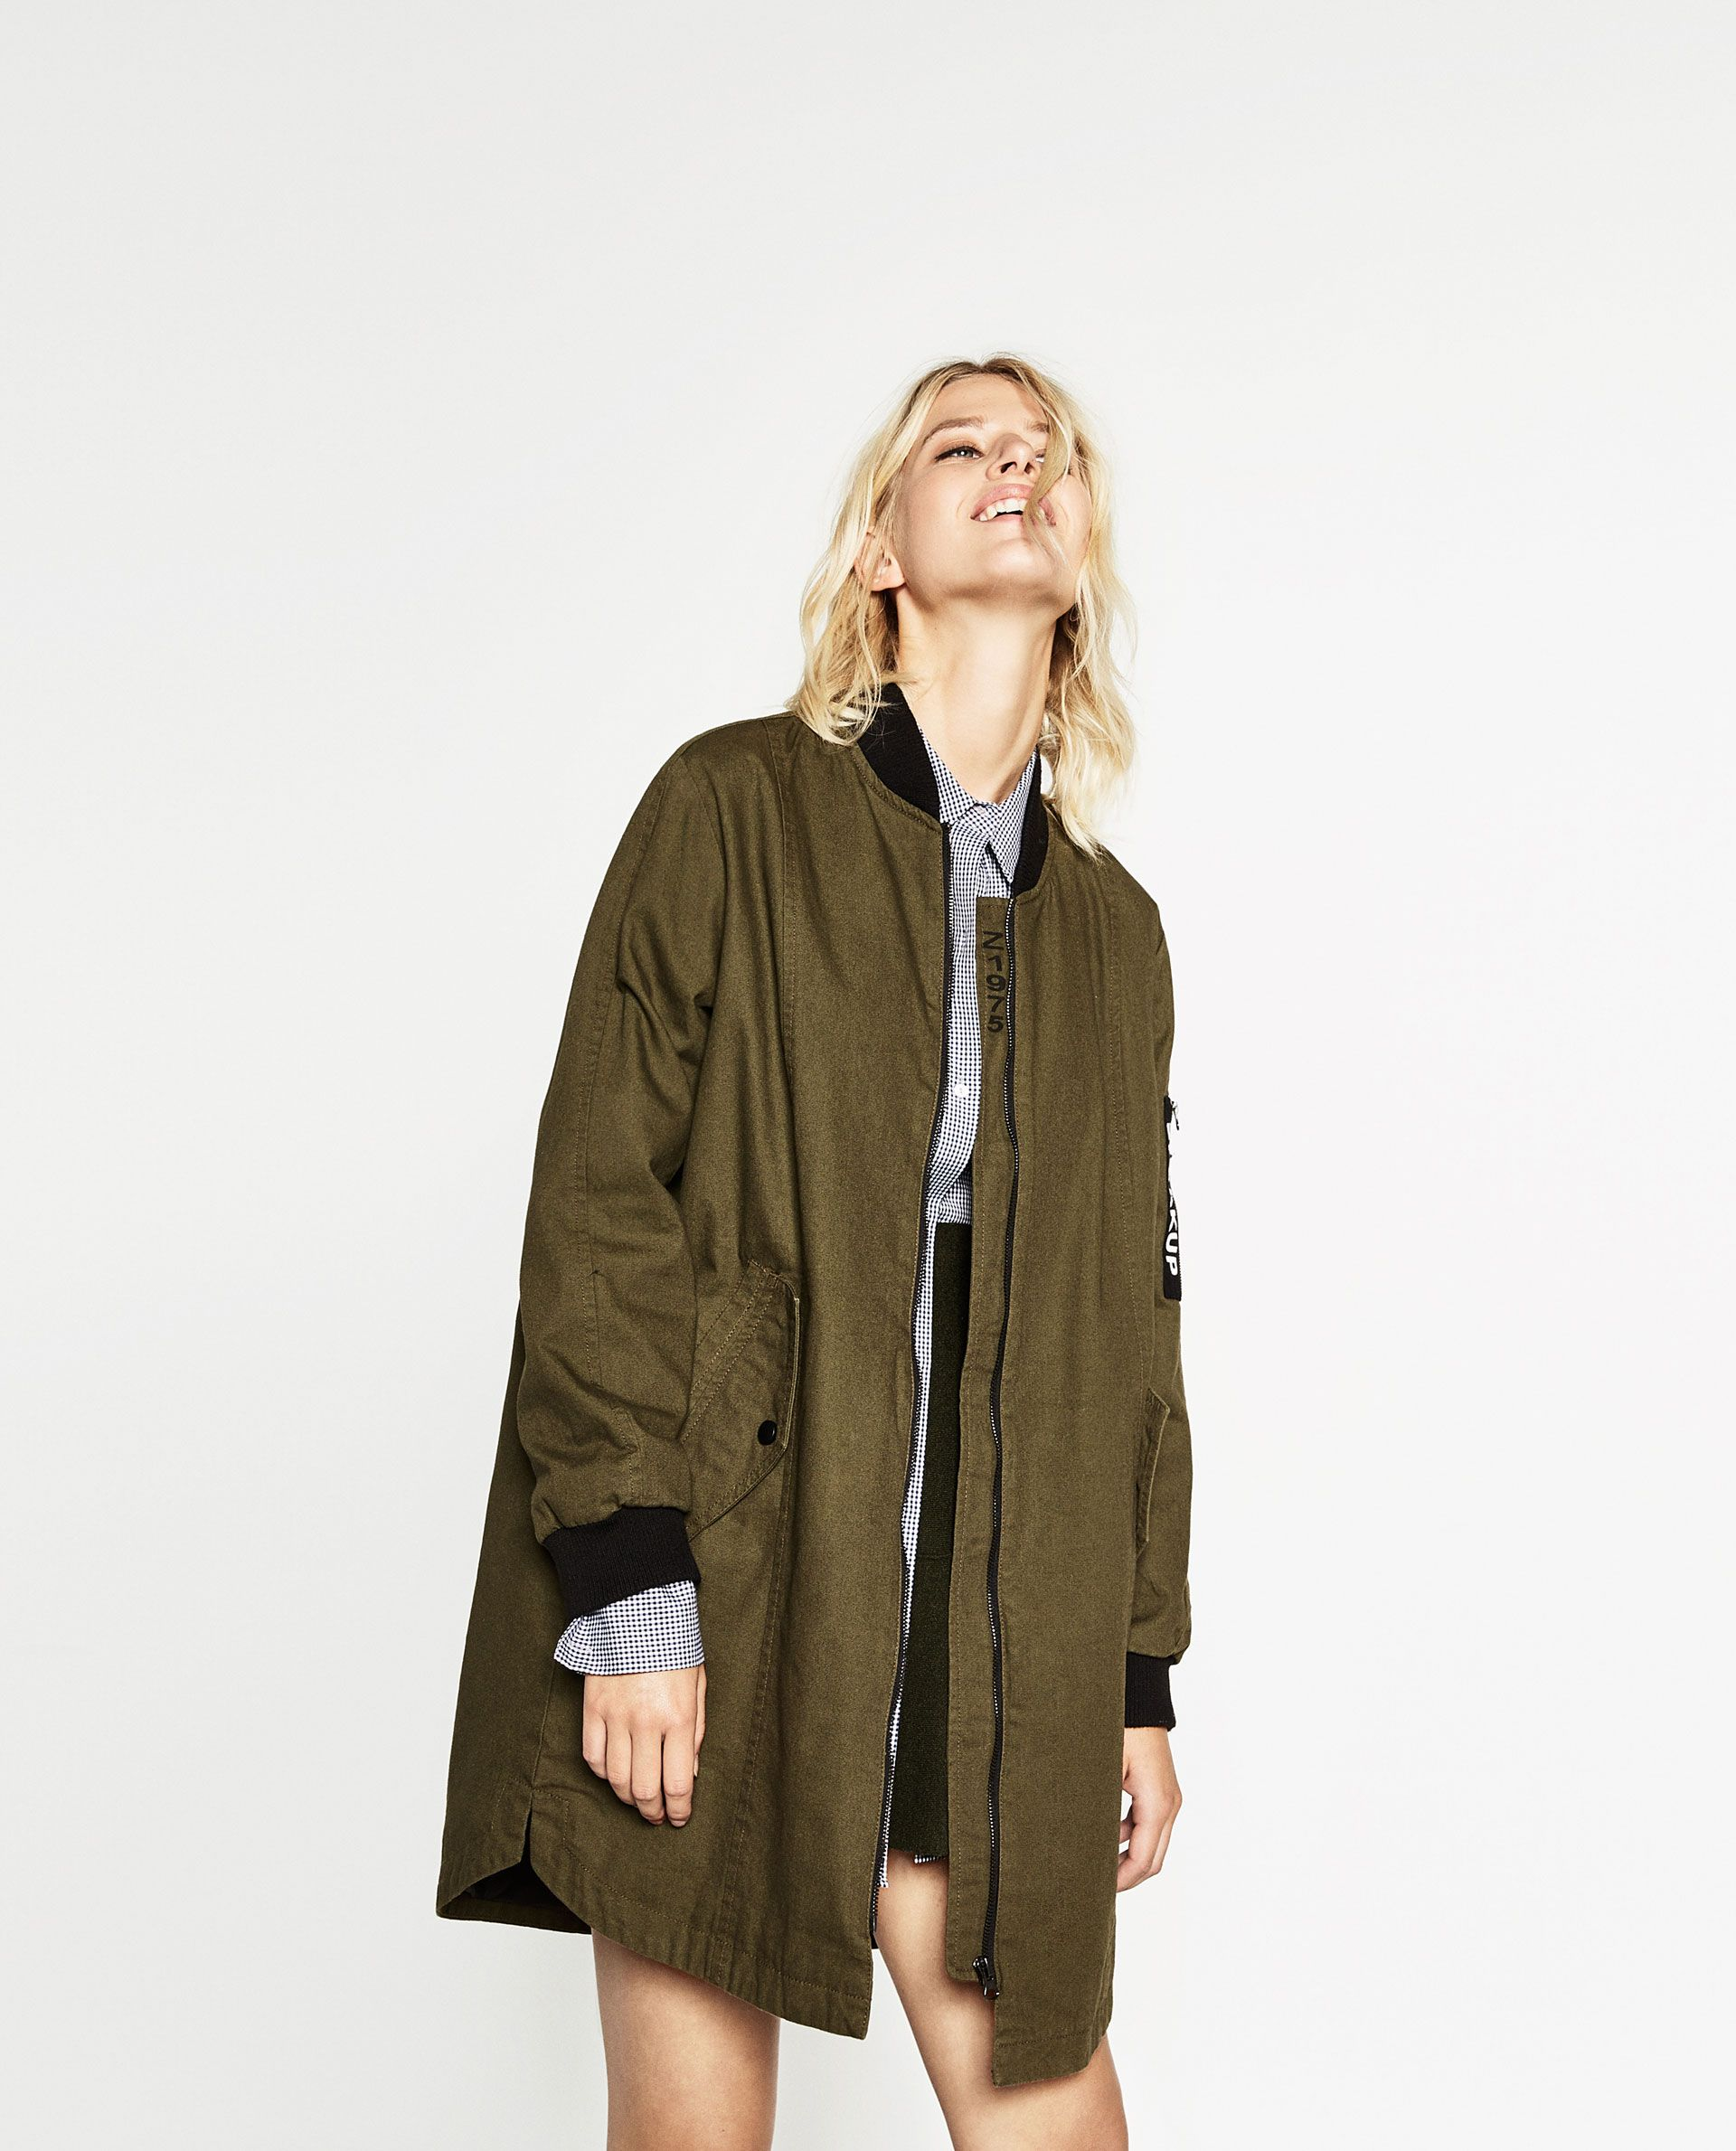 Long Bomber Jacket New In Woman Long Bomber Jacket Coats Jackets Women Long Coat Women [ 2379 x 1920 Pixel ]